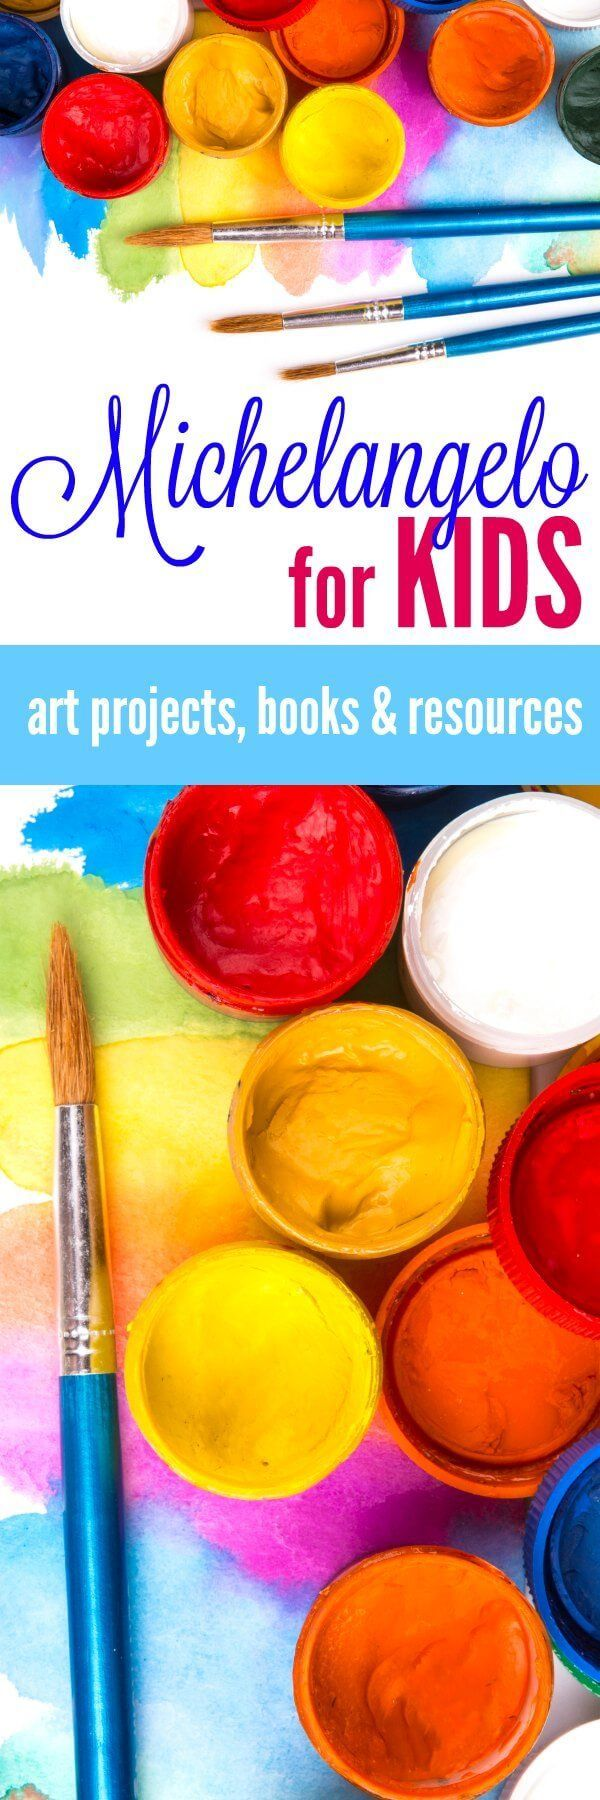 Fun activity ideas and resources for learning about this famous Renaissance artist. Fun lessons about Michelangelo for Kids - paint, sculpt, and learn about art.